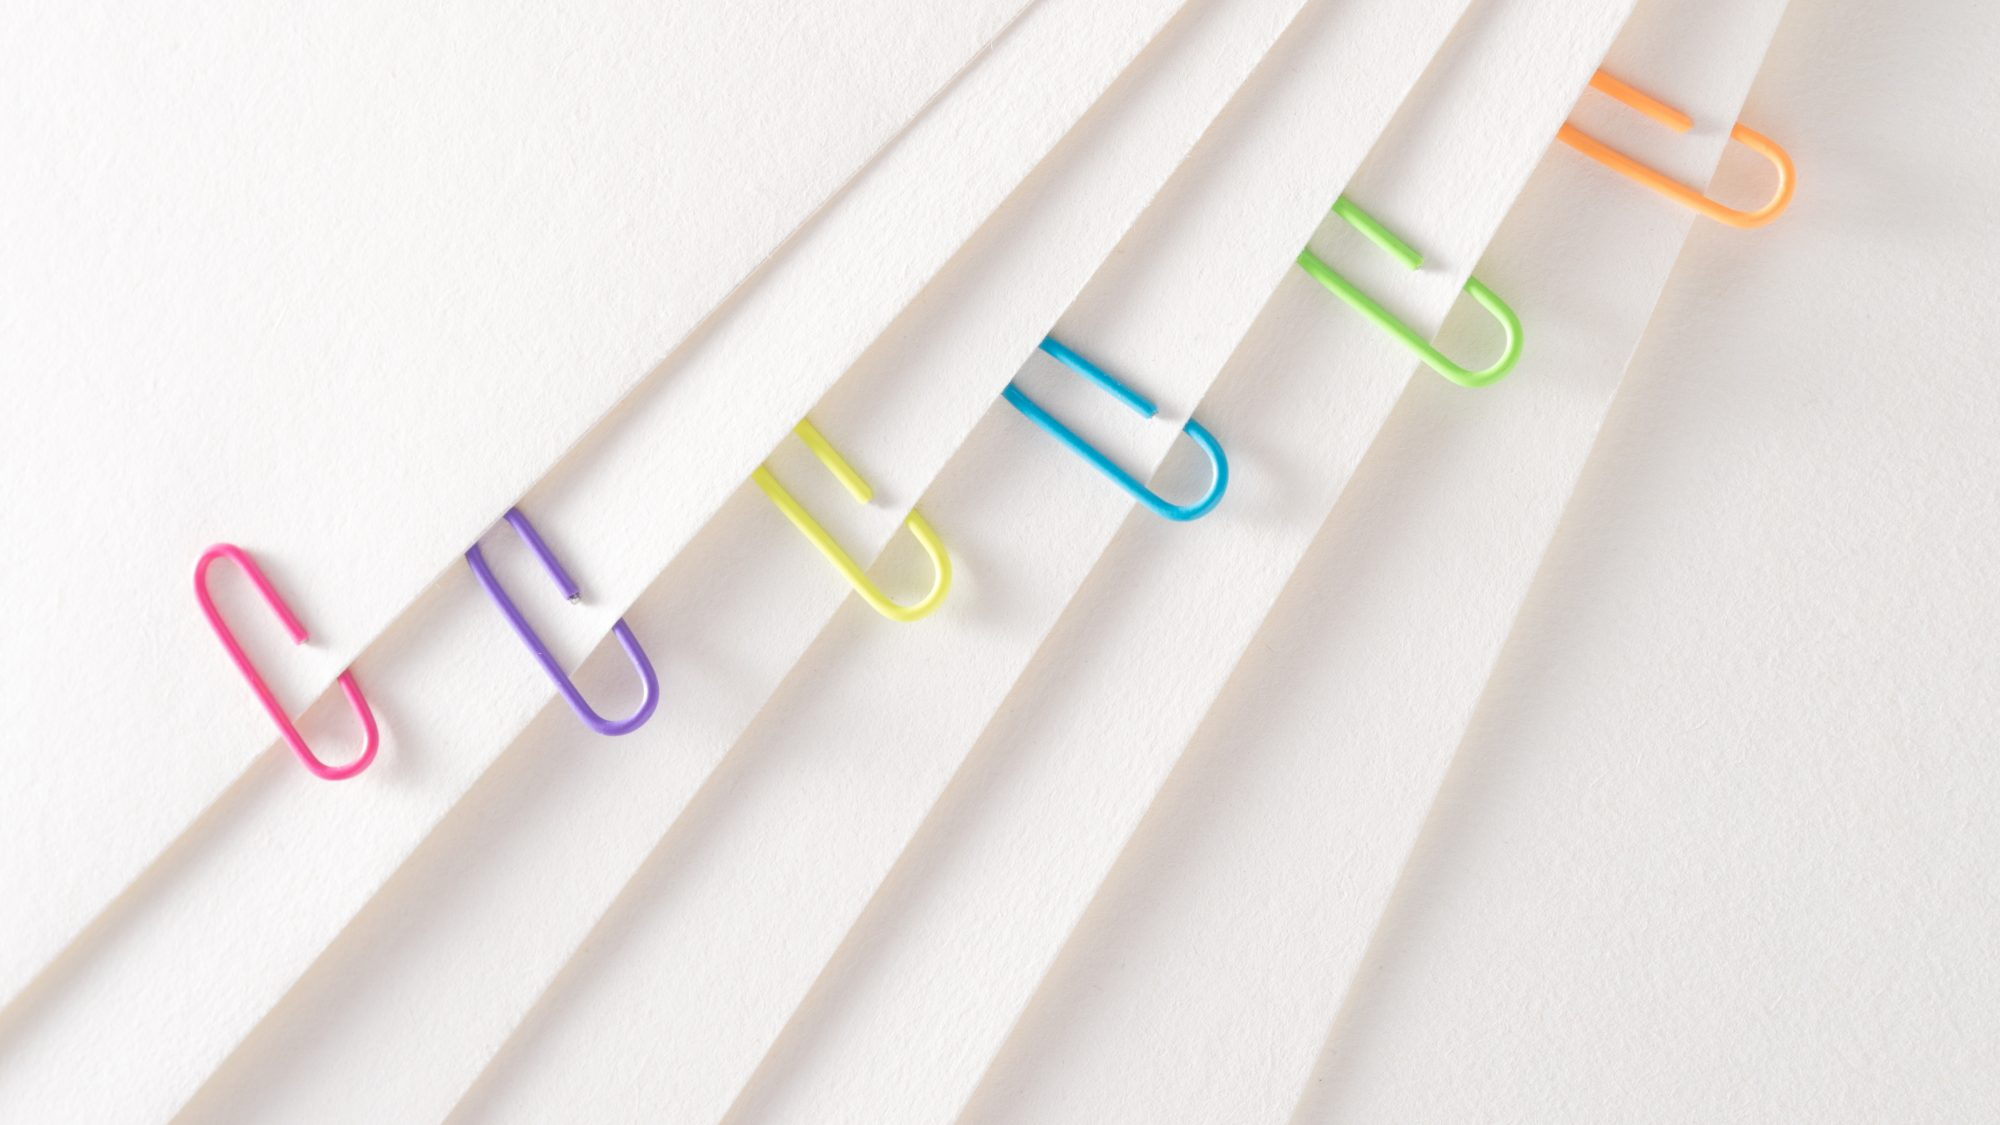 image of file folders with paper clips: How to Organize Paper Clutter